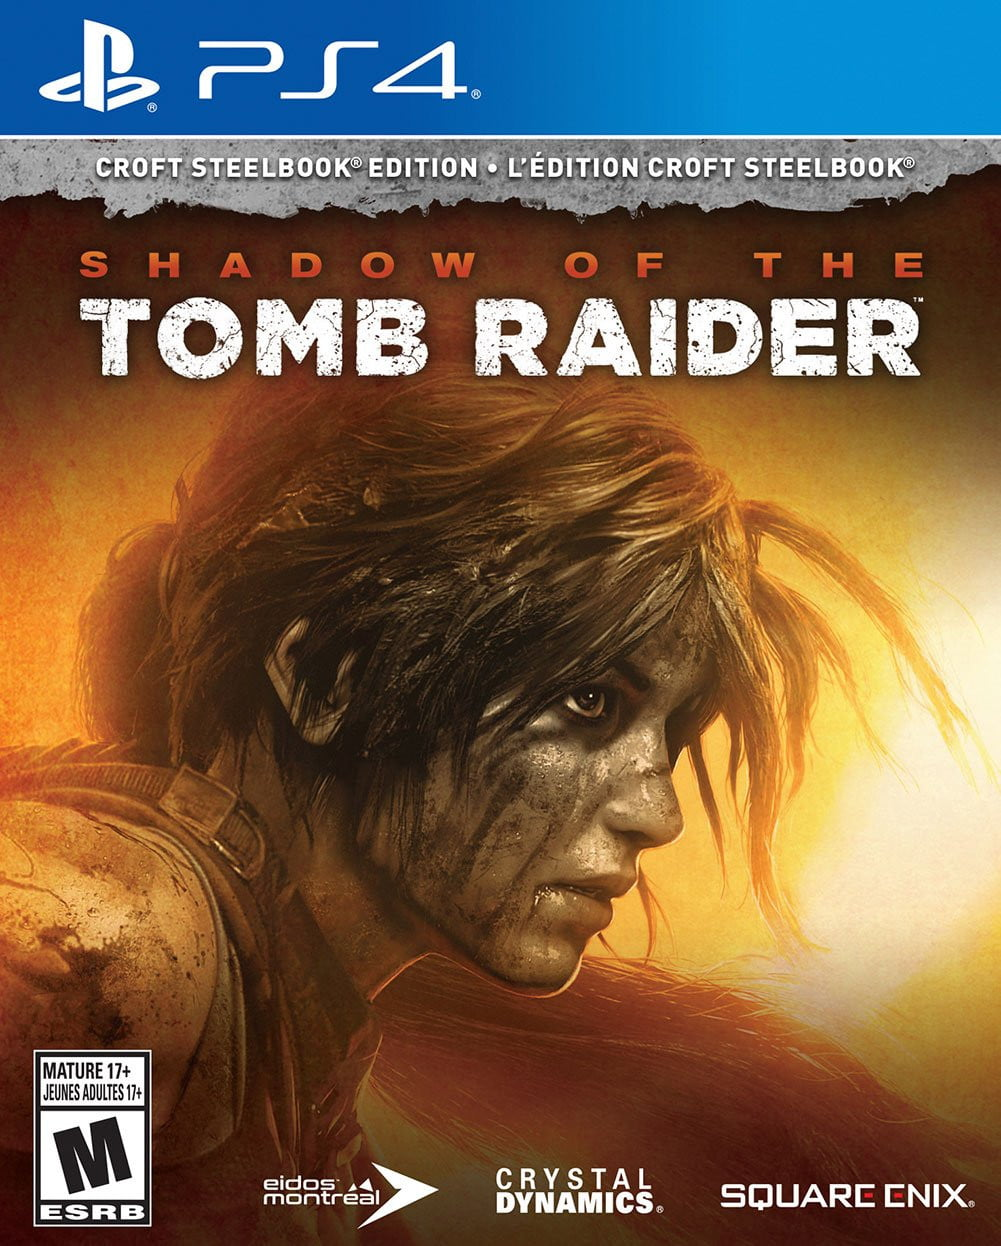 Buy Shadow of the Tomb Raider - Croft Edition (PS4) PS4 Game in Egypt - Shamy Stores